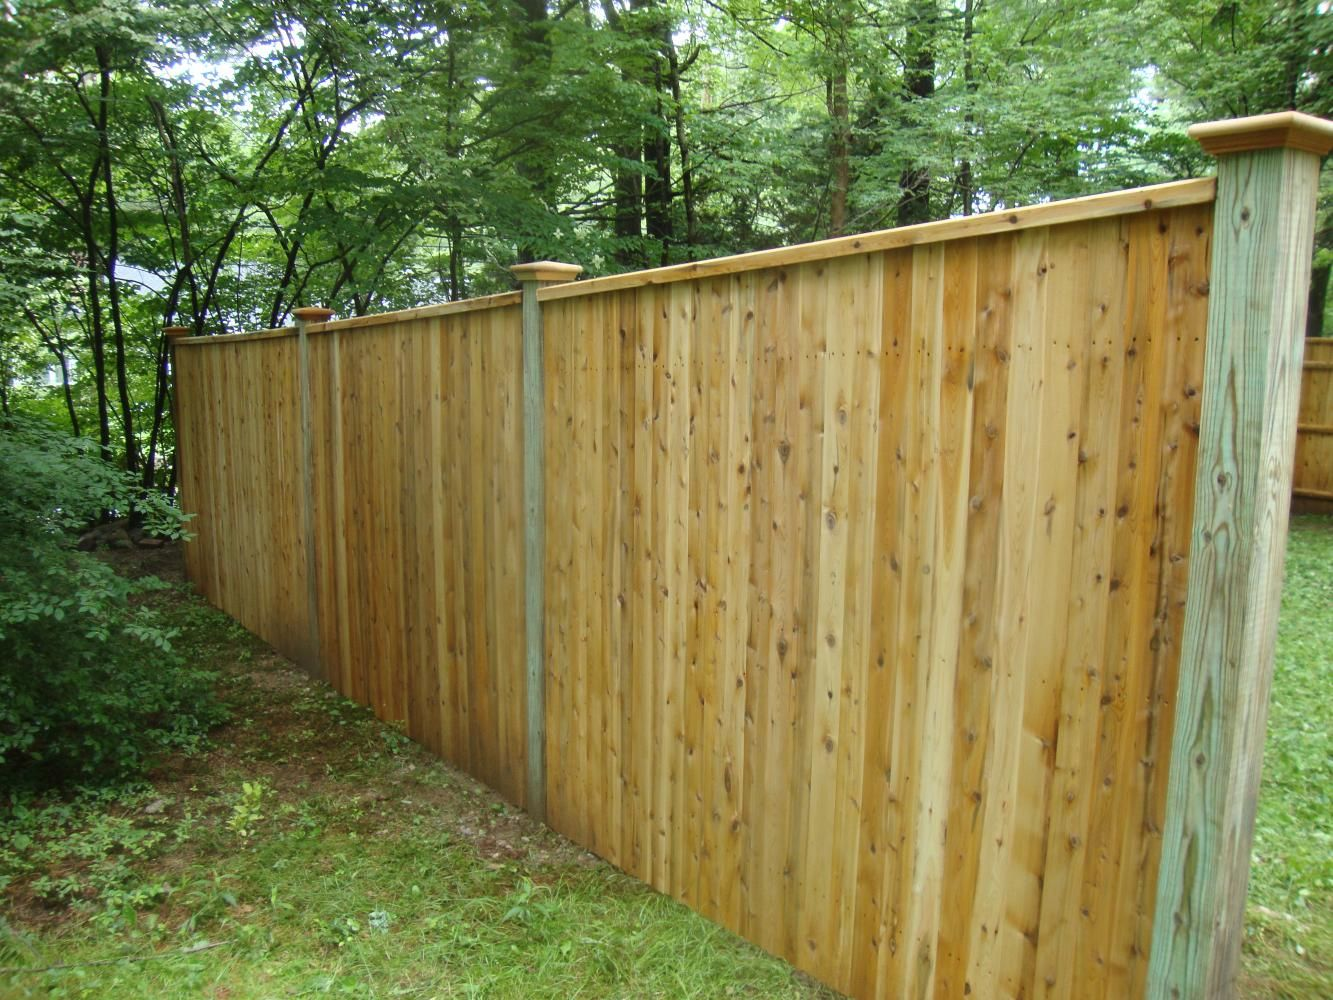 6 High Traditional Cedar Board Fence With Pressure Treated Posts And Colonial Caps Cedar Boards Fence Panels Modern Design